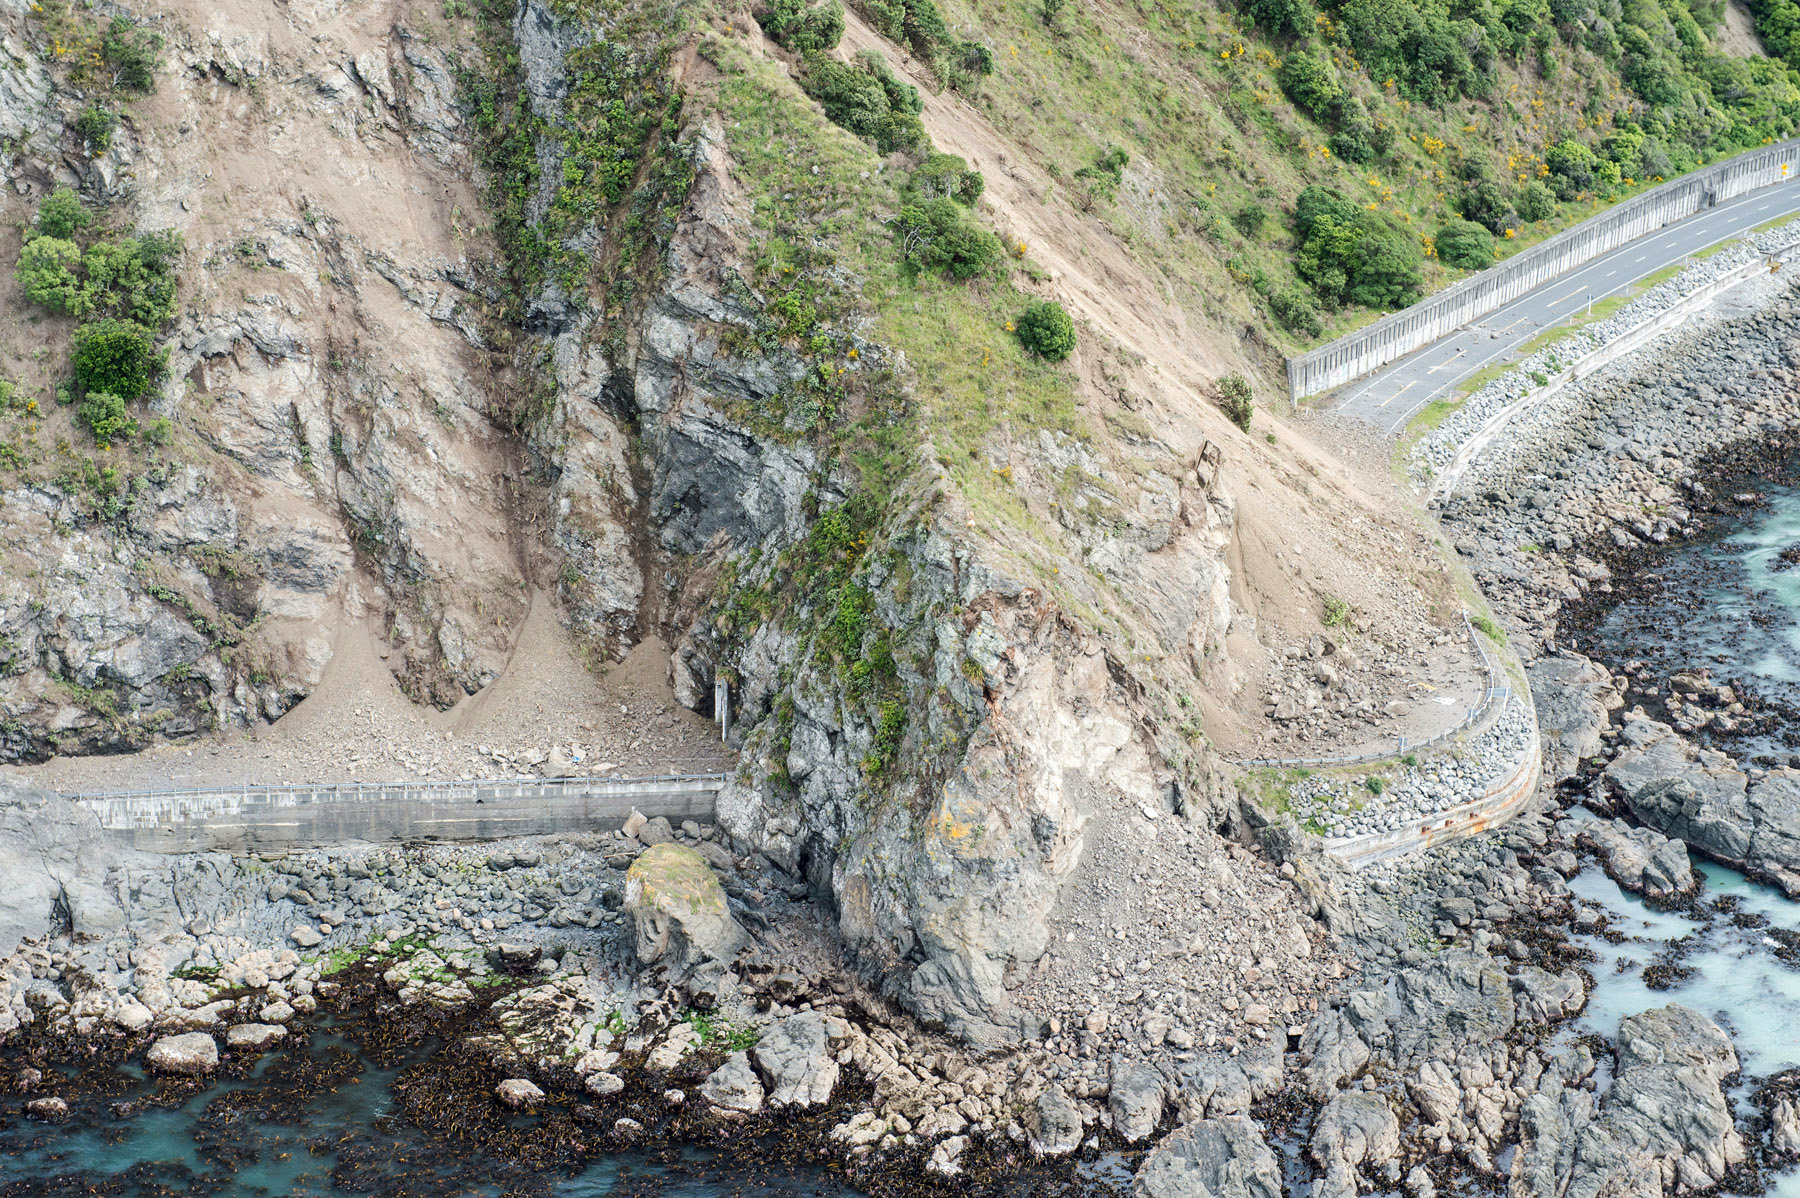 Landslides block State Highway One near Kaikoura on the upper east coast of New Zealand's South Island following an earthquake, November 14, 2016. Sgt Sam Shepherd/Courtesy of Royal New Zealand Defence Force/Handout via REUTERS